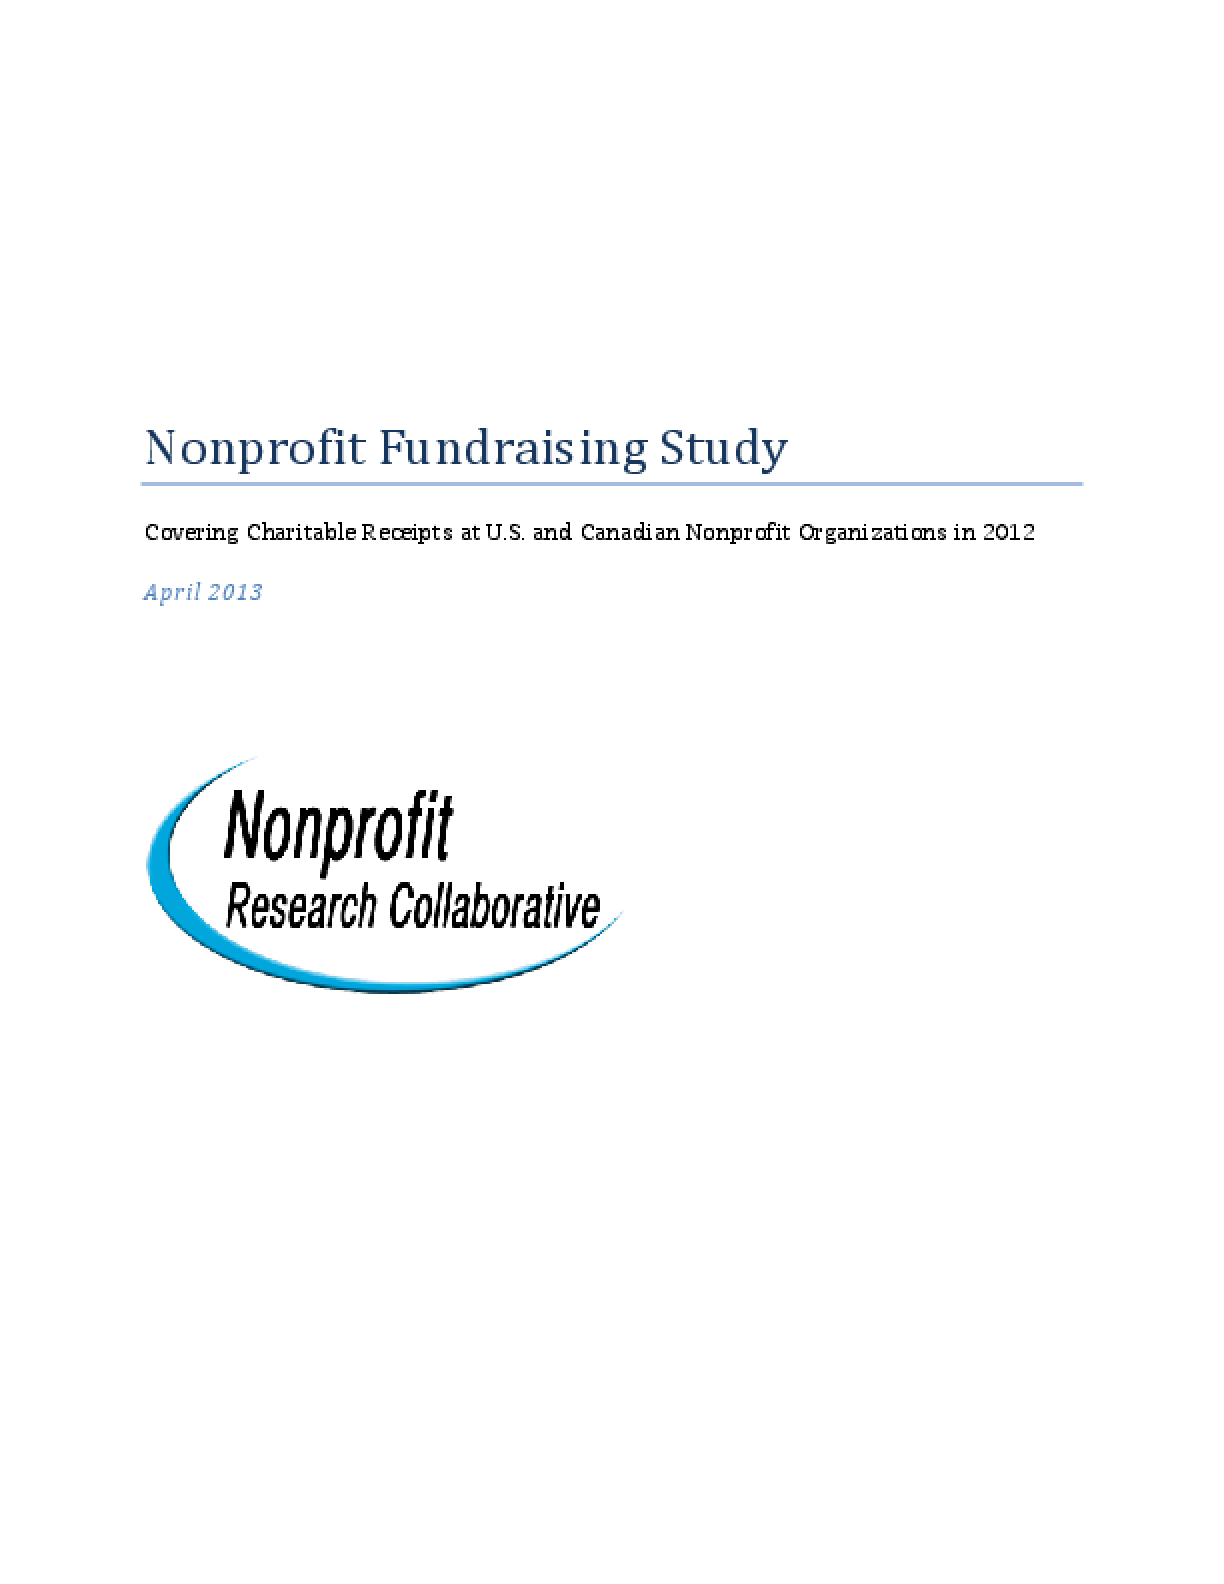 Nonprofit Fundraising Study: Covering Charitable Receipts at U.S. and Canadian Nonprofit Organizations in 2012